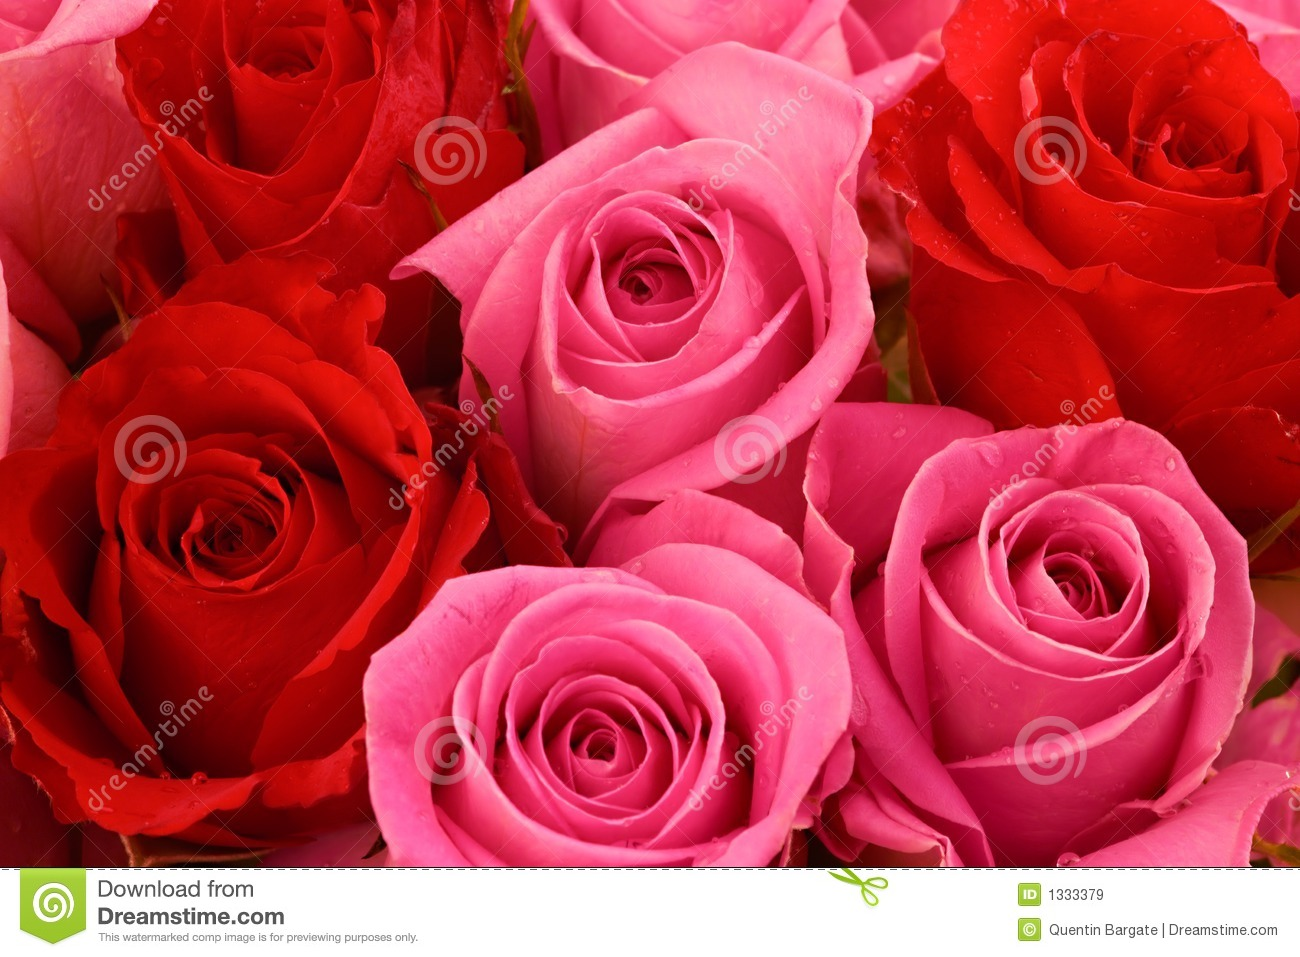 to the rose upon the rood of time essay To the rose upon the rood of time by william butler yeats red rose, proud  rose, sad rose of all my days come near me, while i sing the ancient ways.